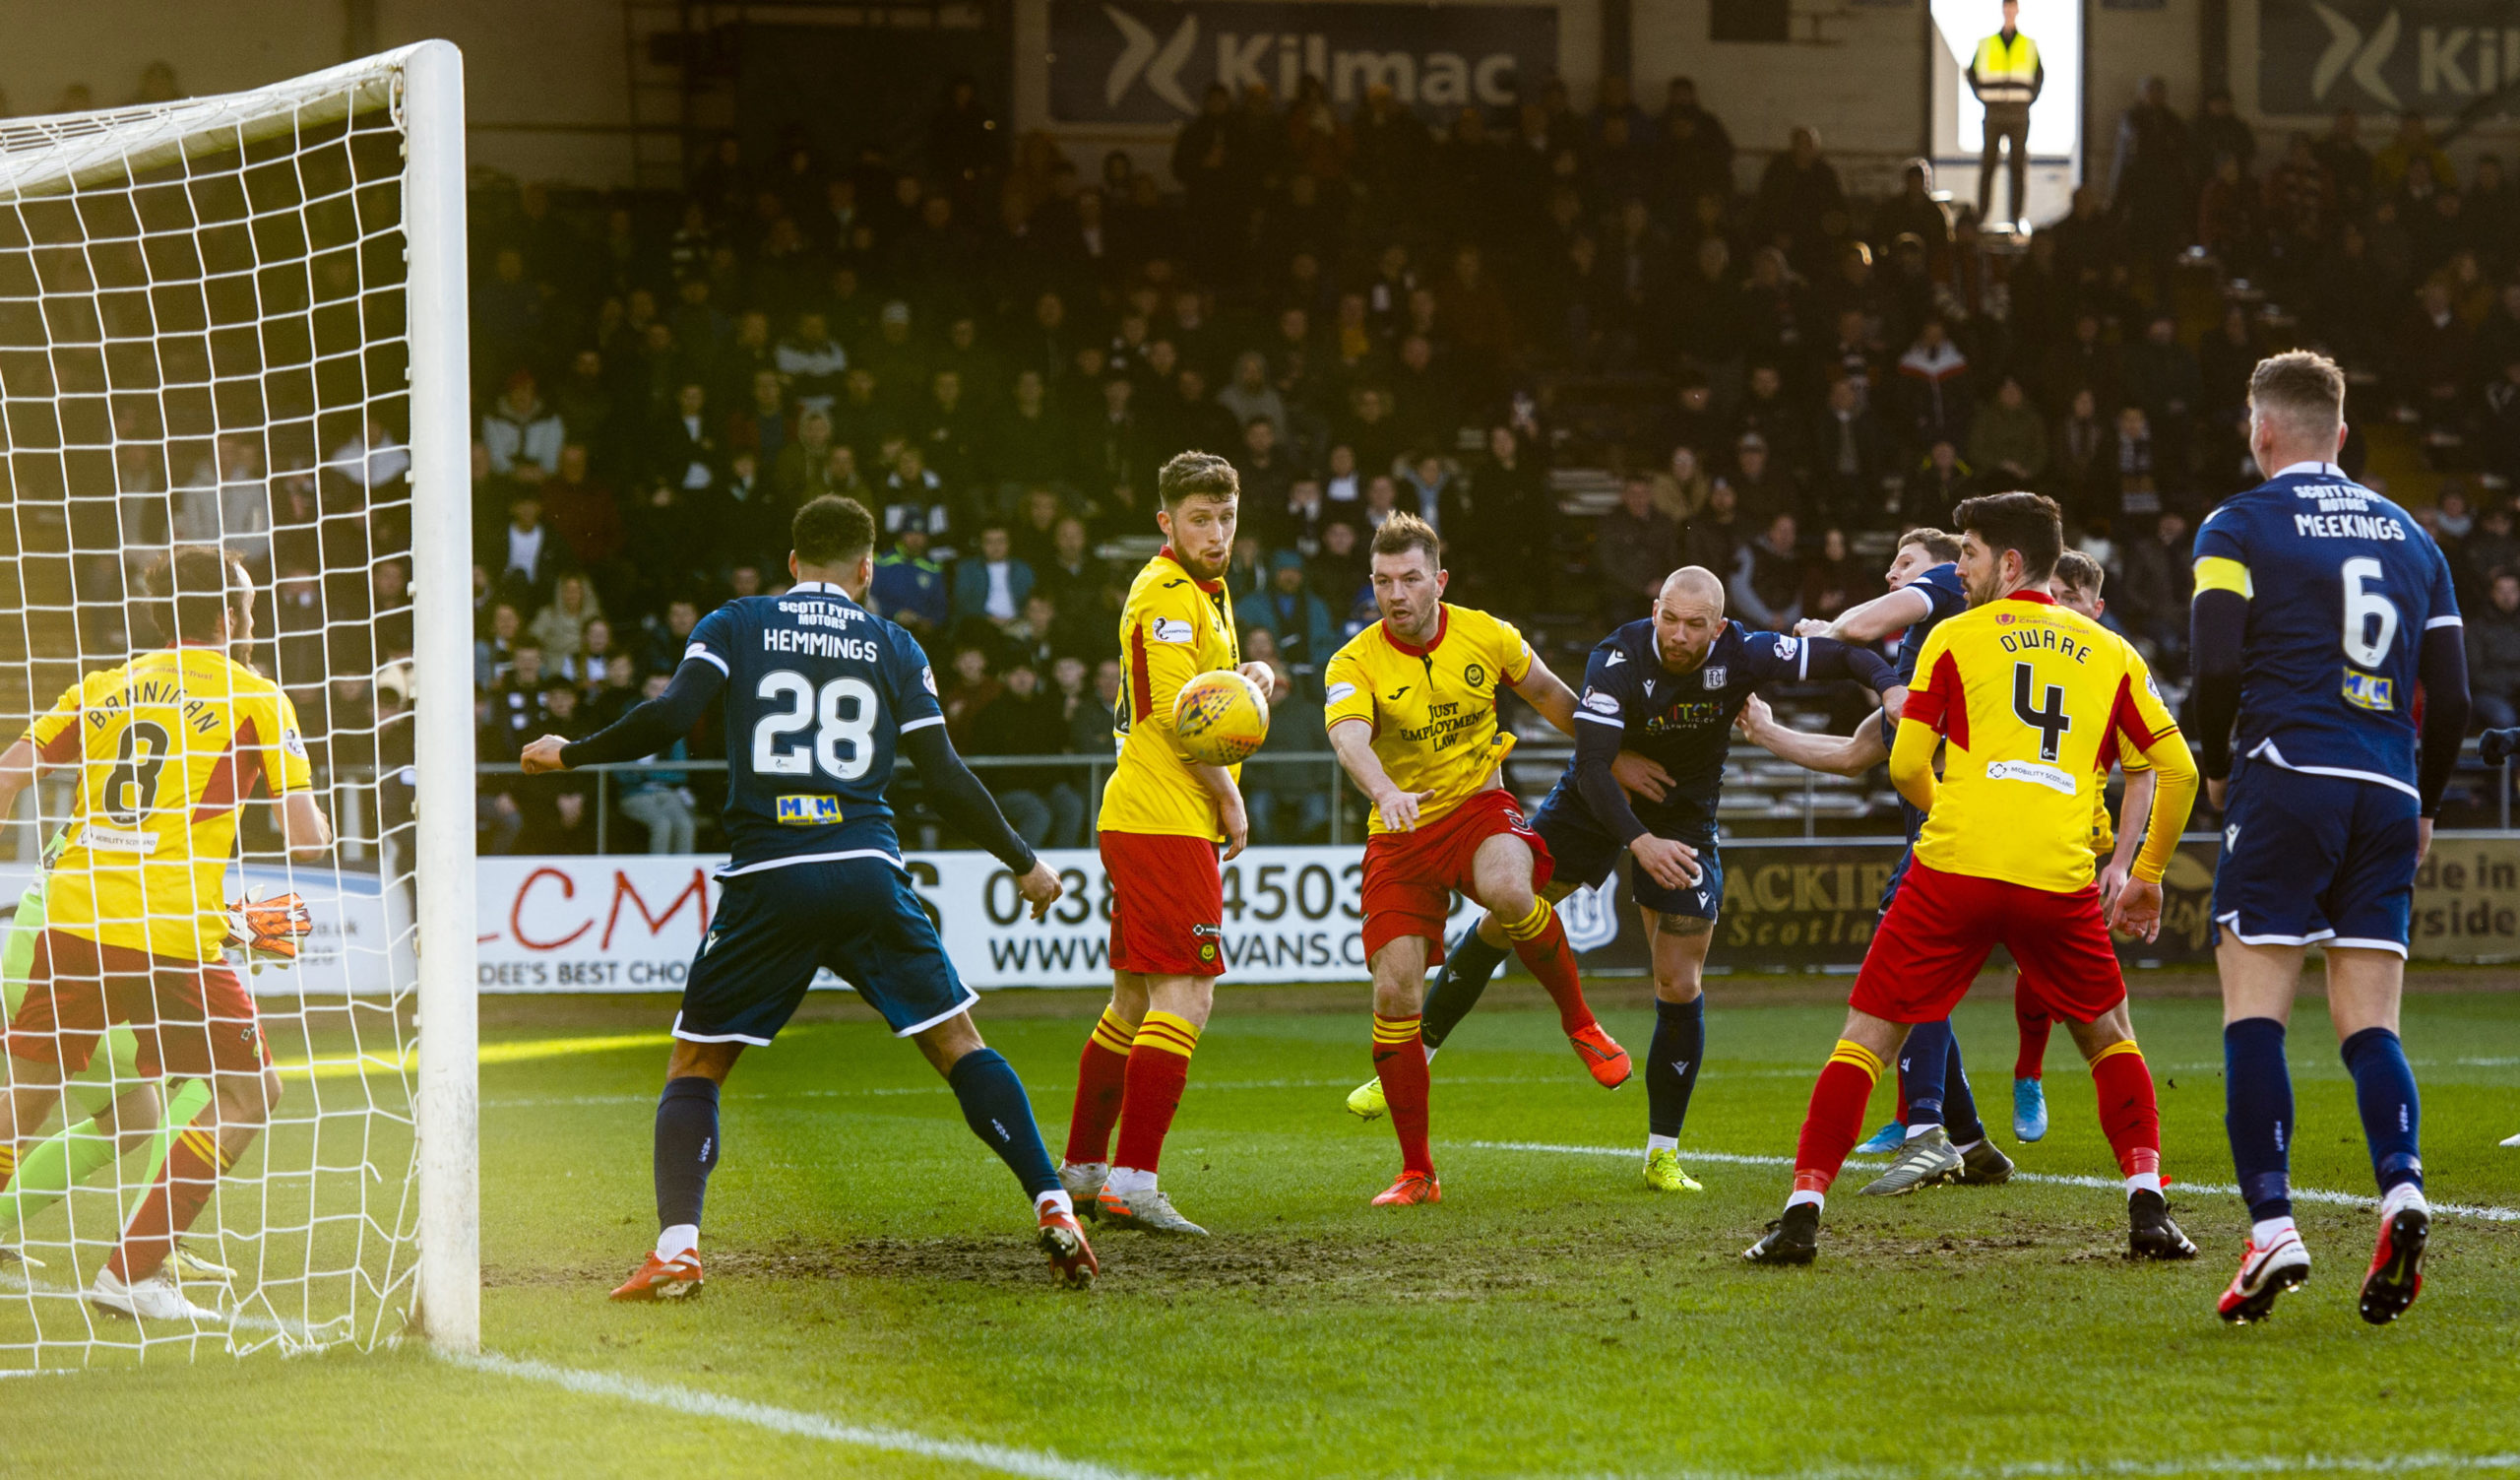 Kane Hemmings (28) gets ready to nick the opening goal.